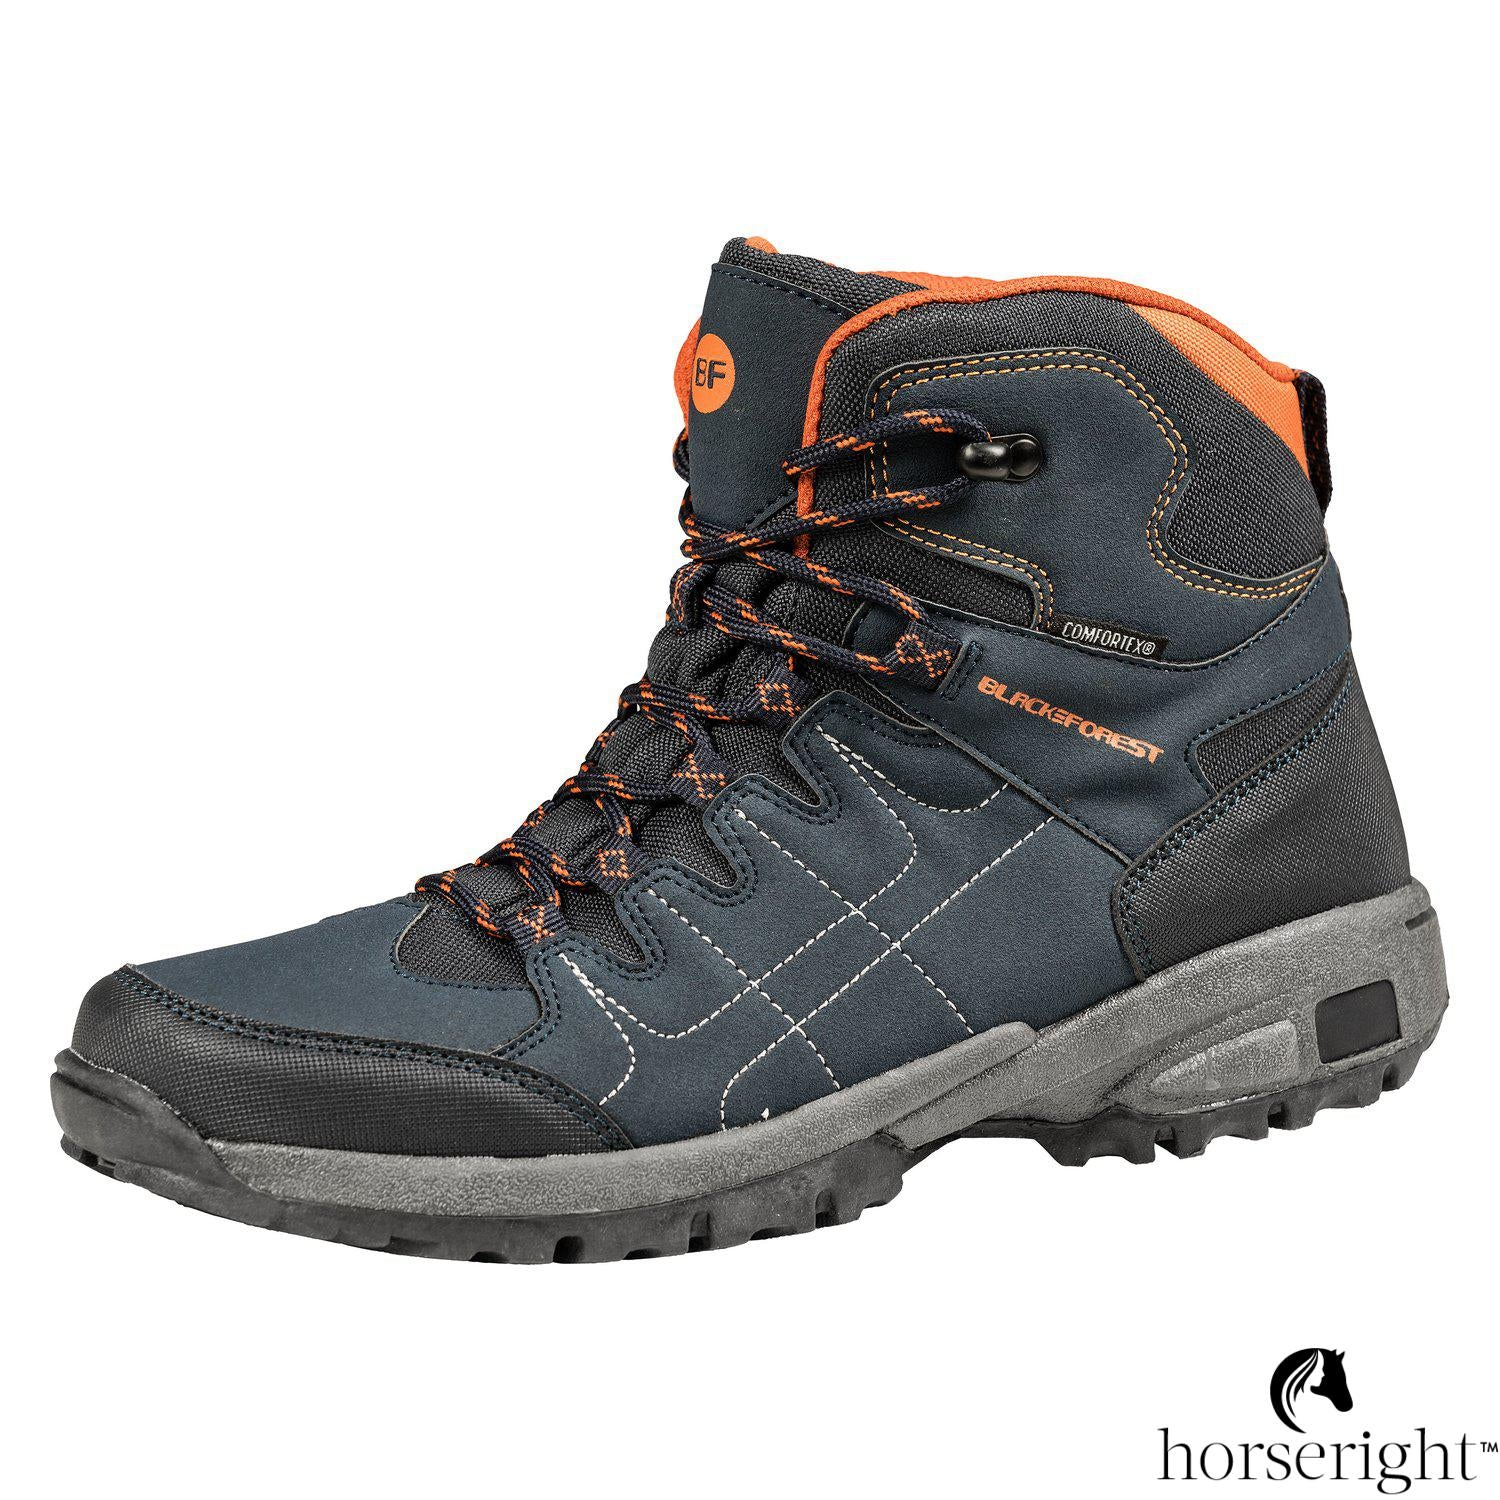 Black Forest Terra Riding And Trekking Shoe